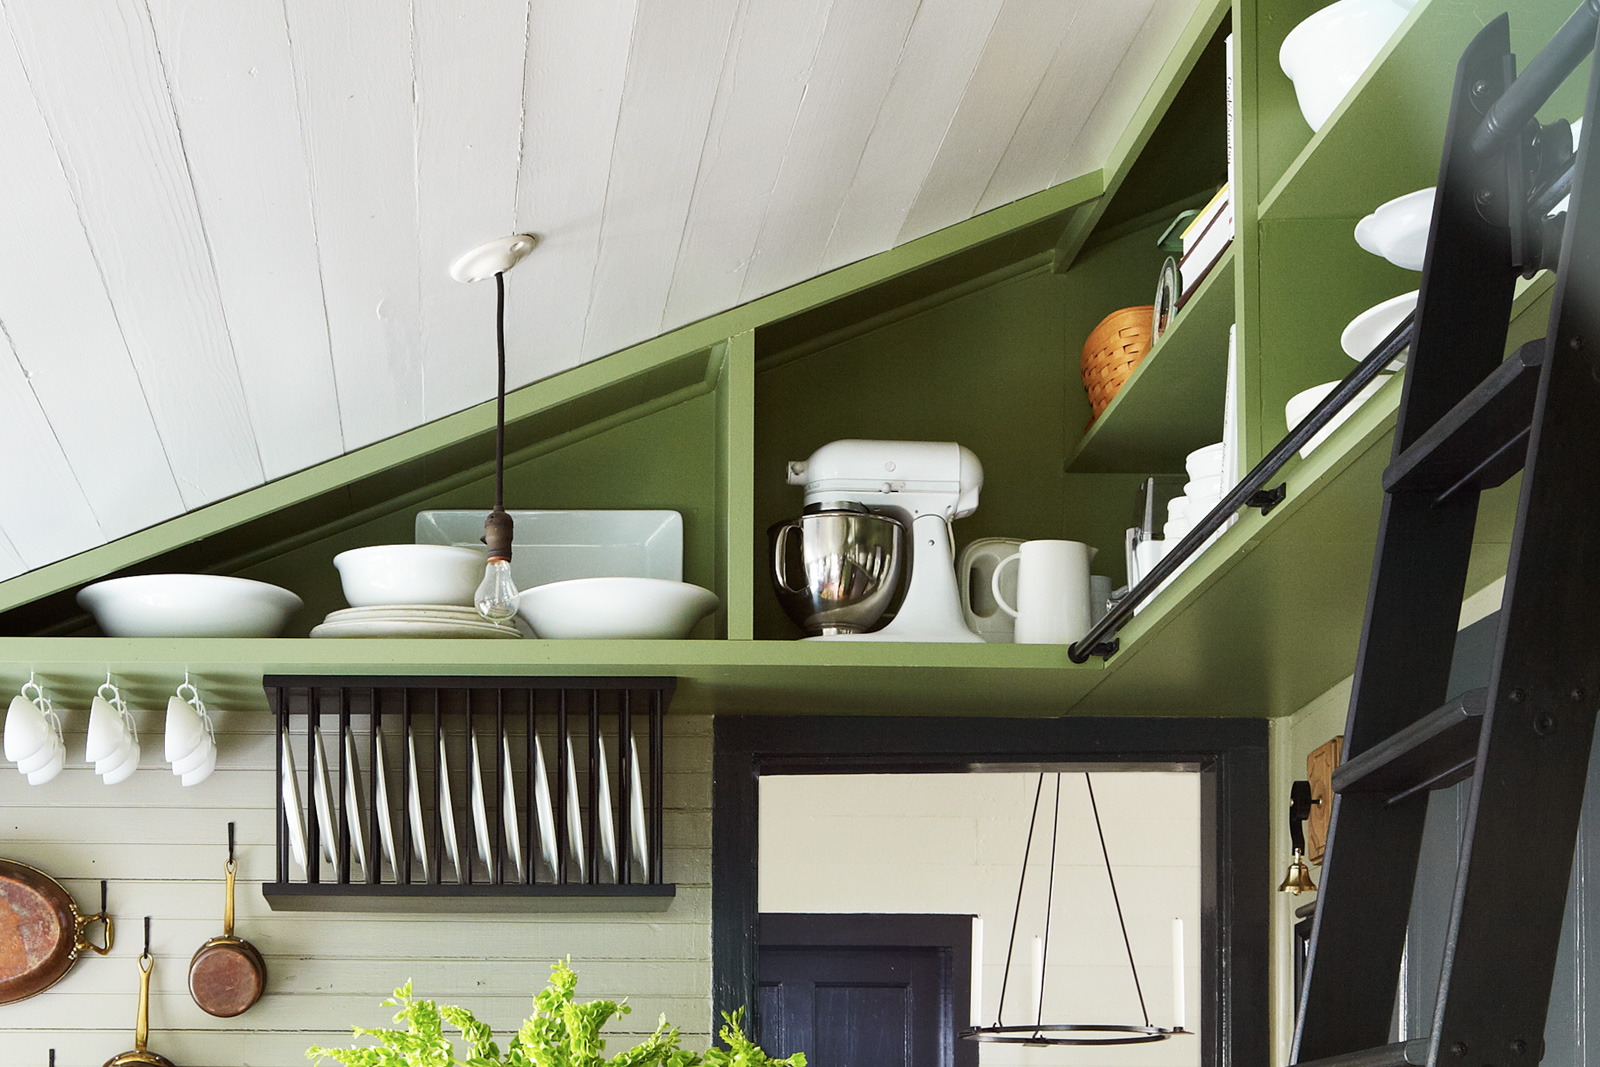 Kitchen with built-in rafter shelving and library ladder